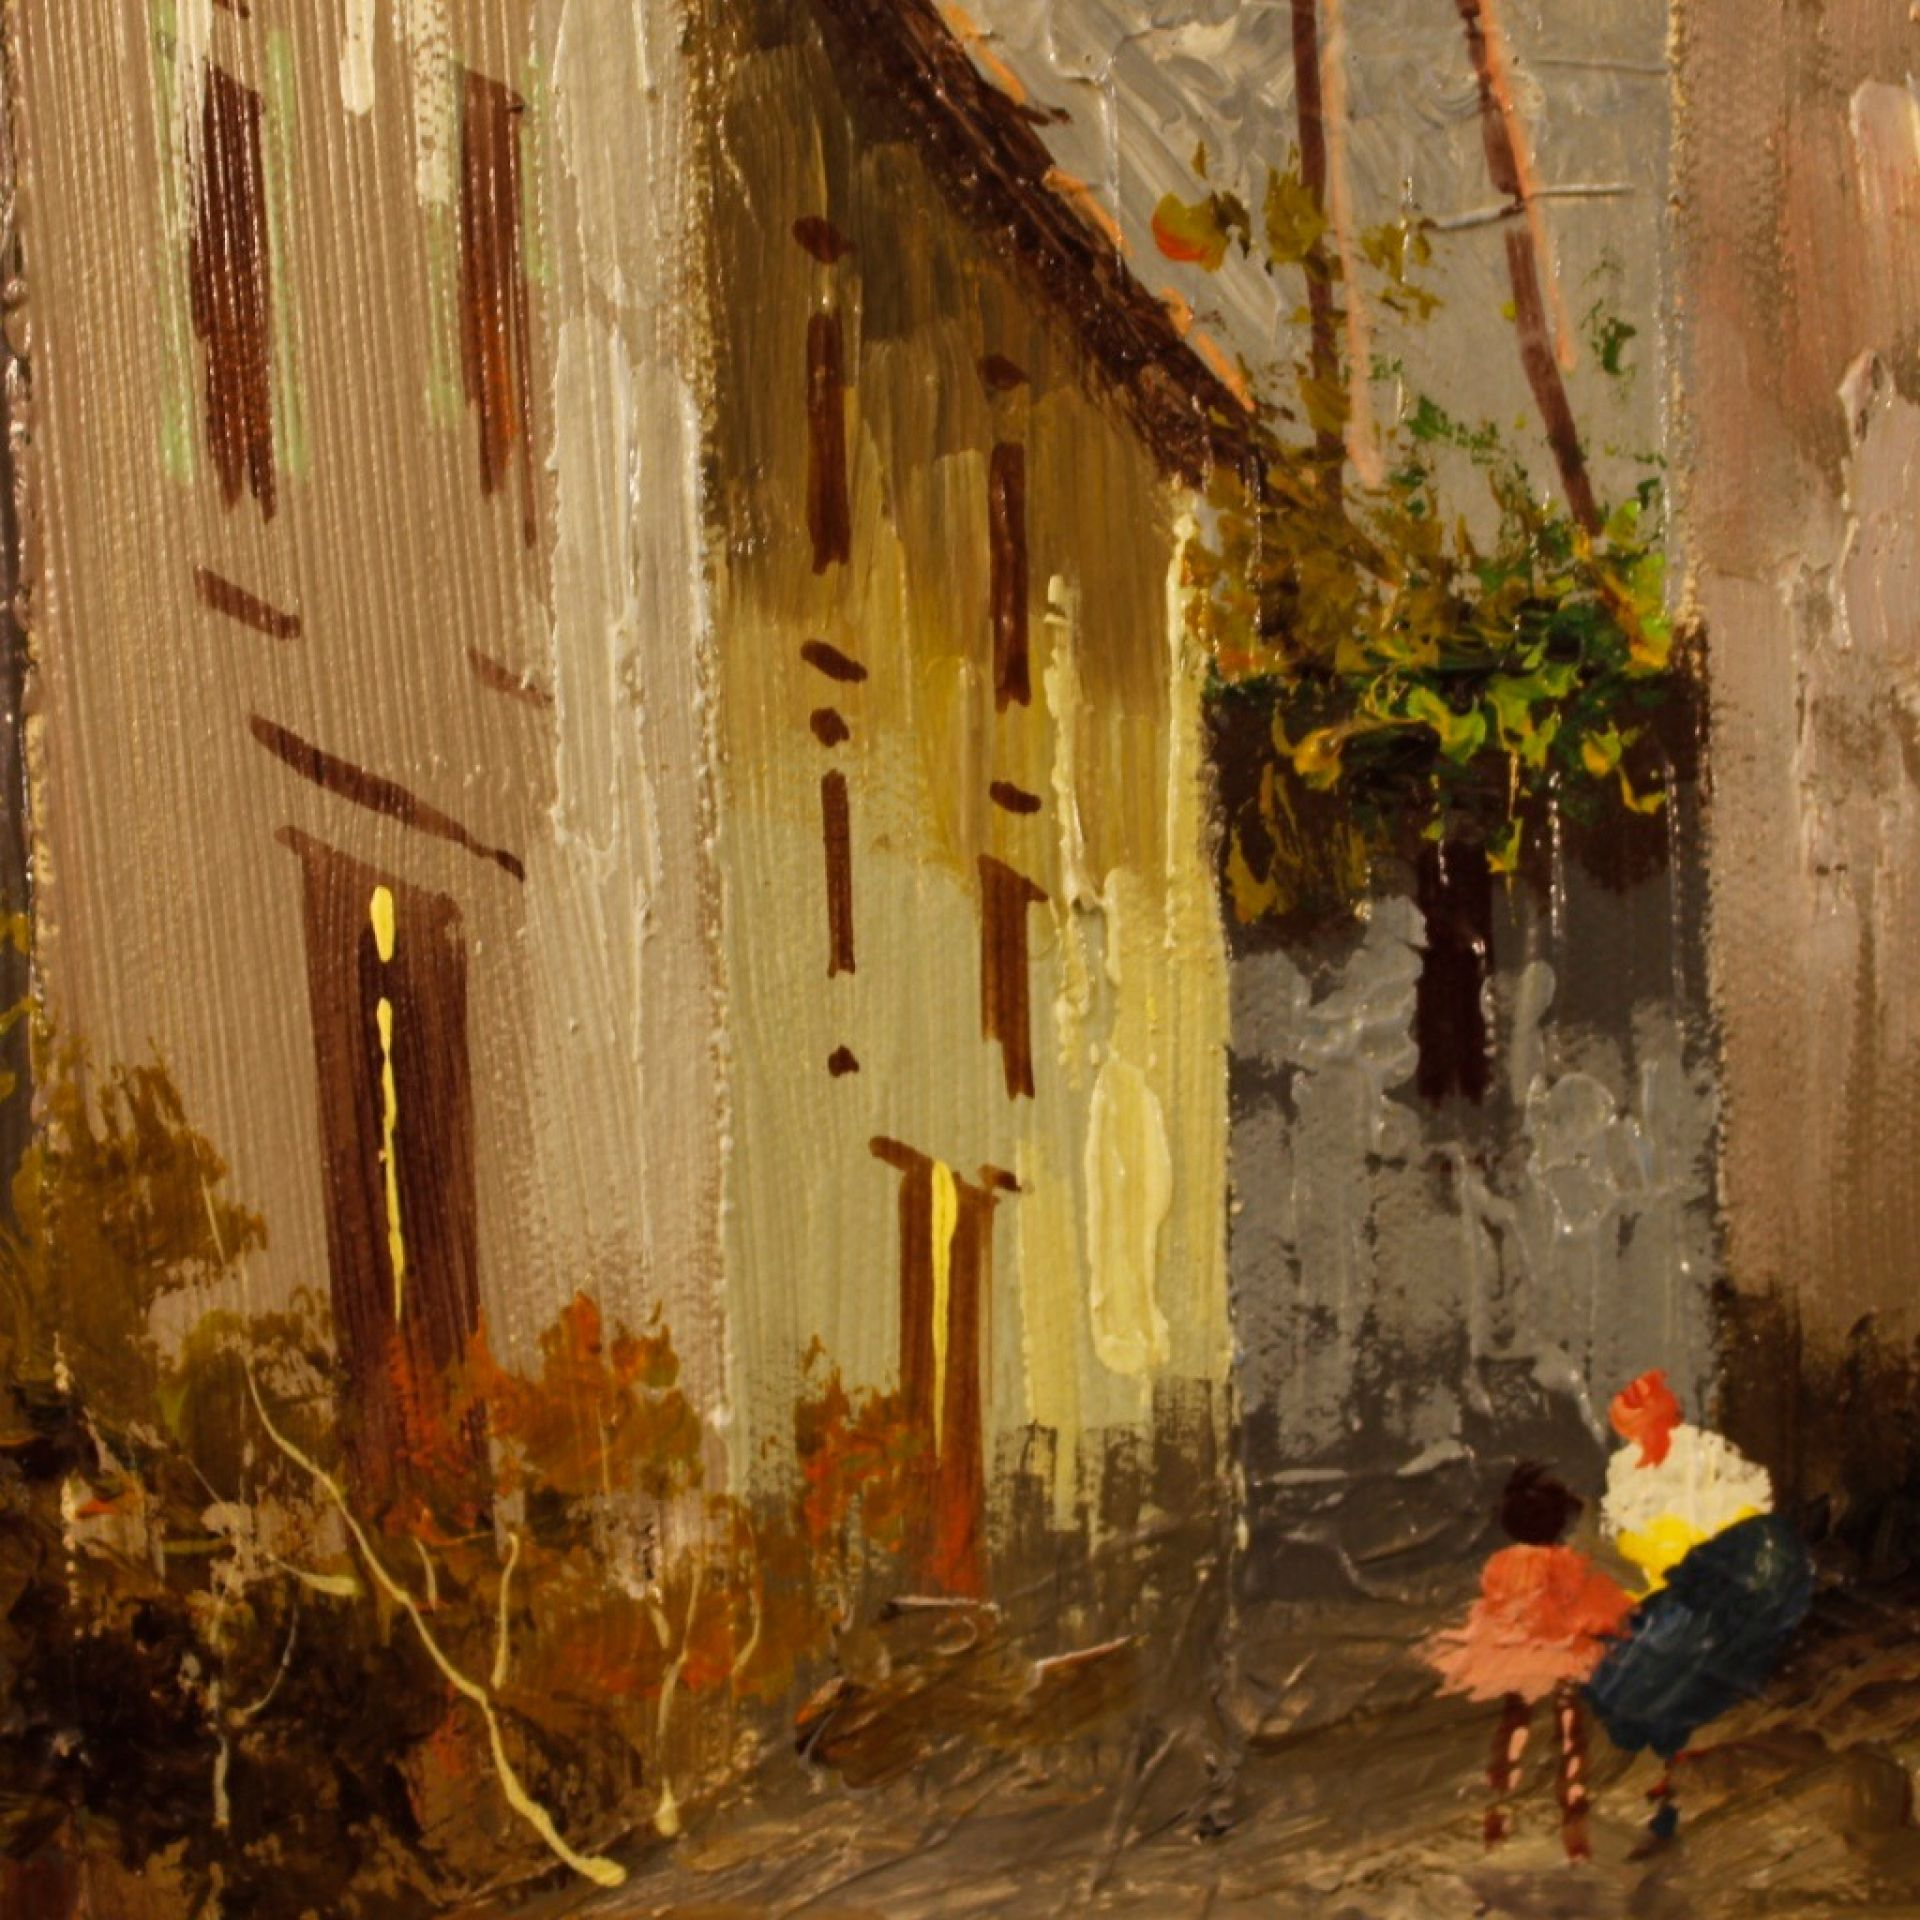 Italian Landscape Painting Mixed Media On Canvas From 20th Century